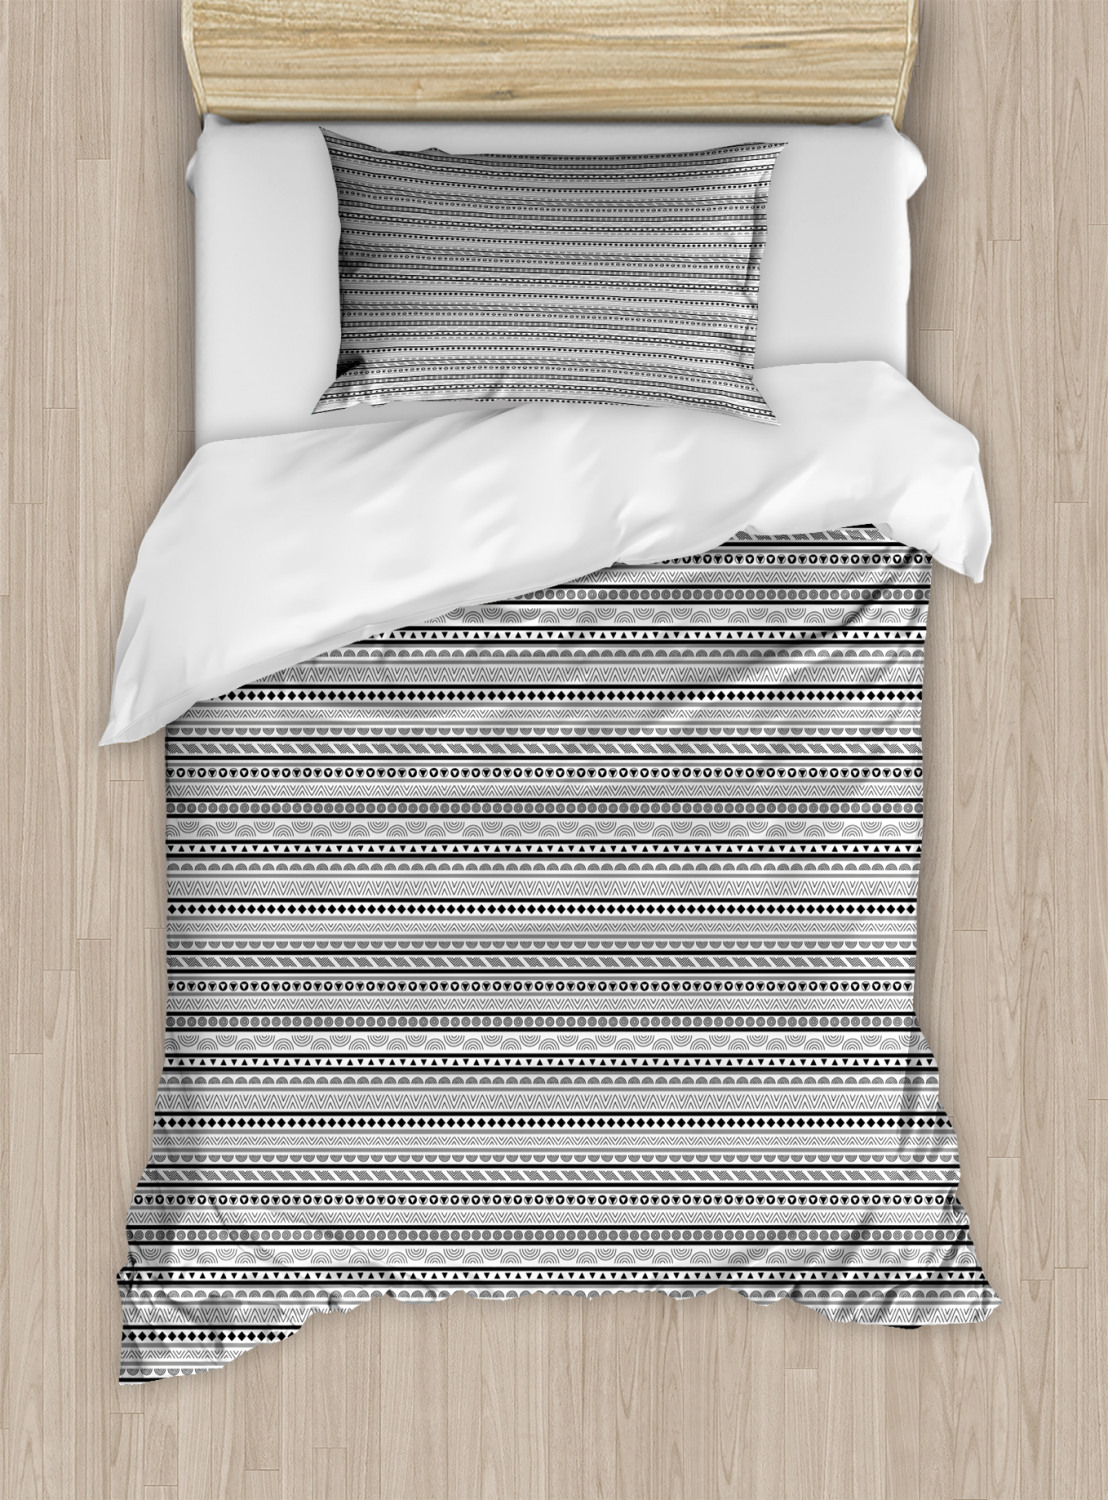 Timeless-Oriental-Duvet-Cover-Set-Twin-Queen-King-Sizes-with-Pillow-Shams thumbnail 22